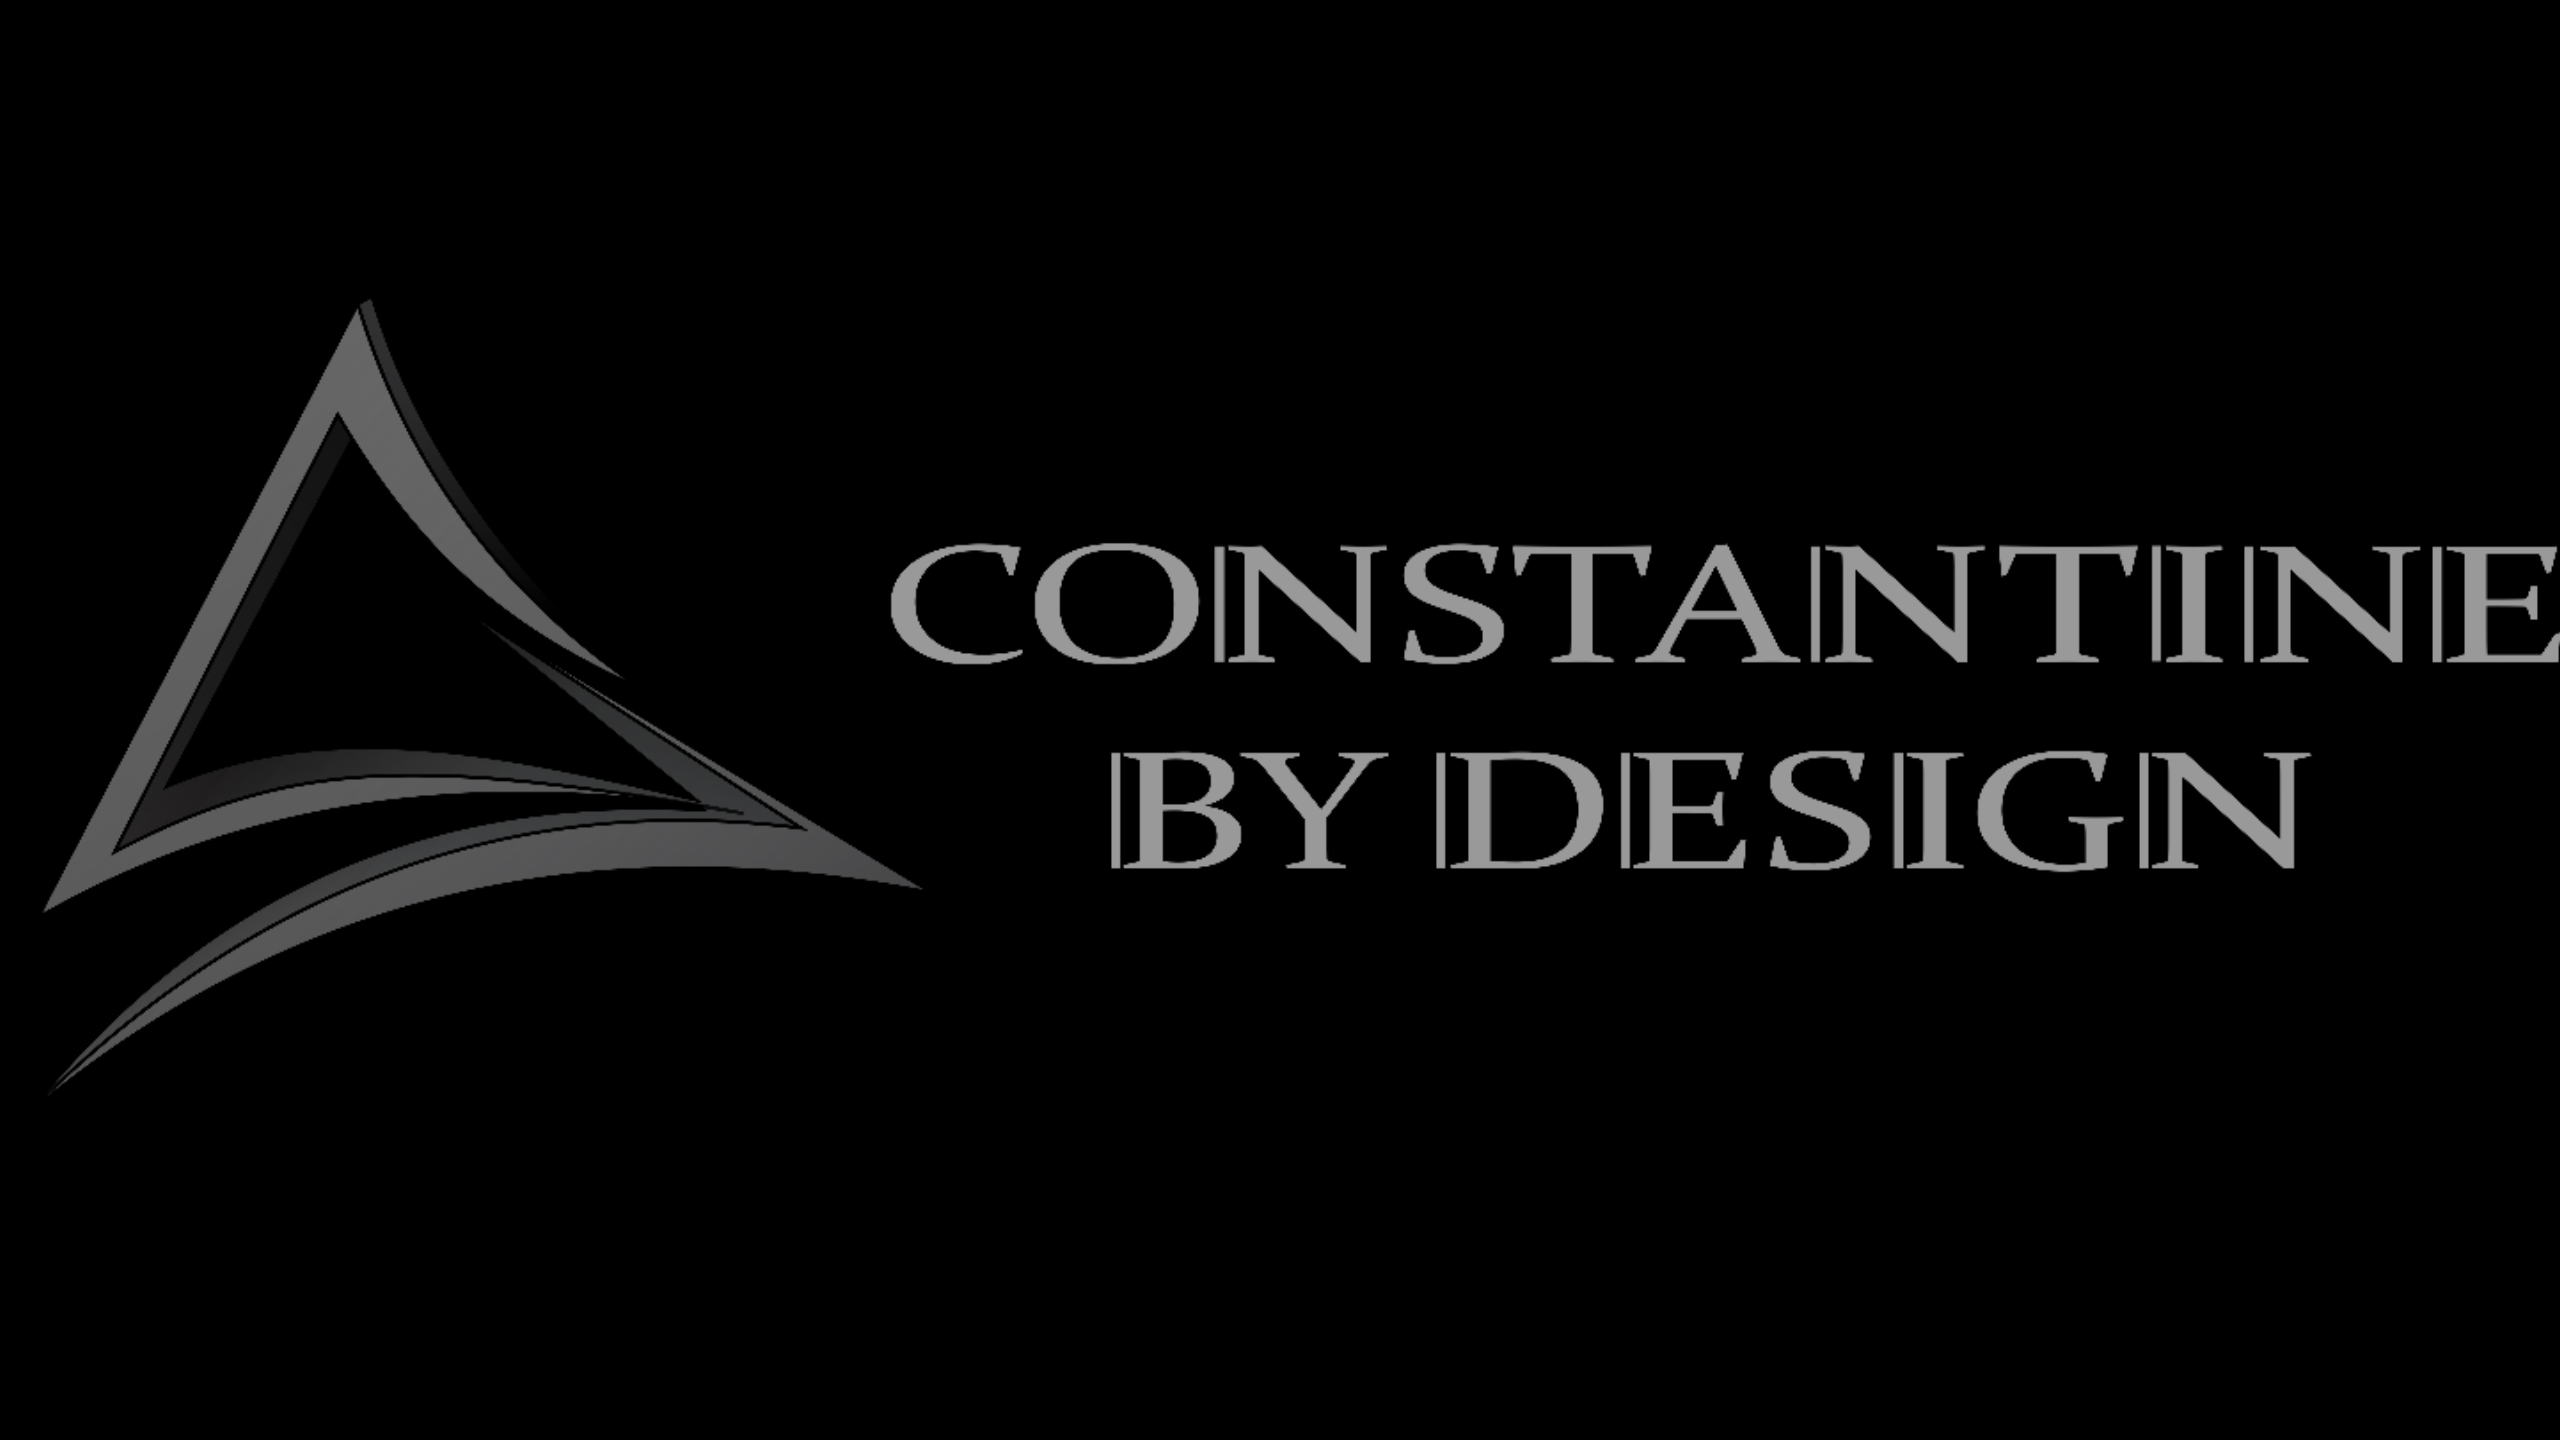 CONSTANTINEBYDESIGN COPYRIGHT 2020